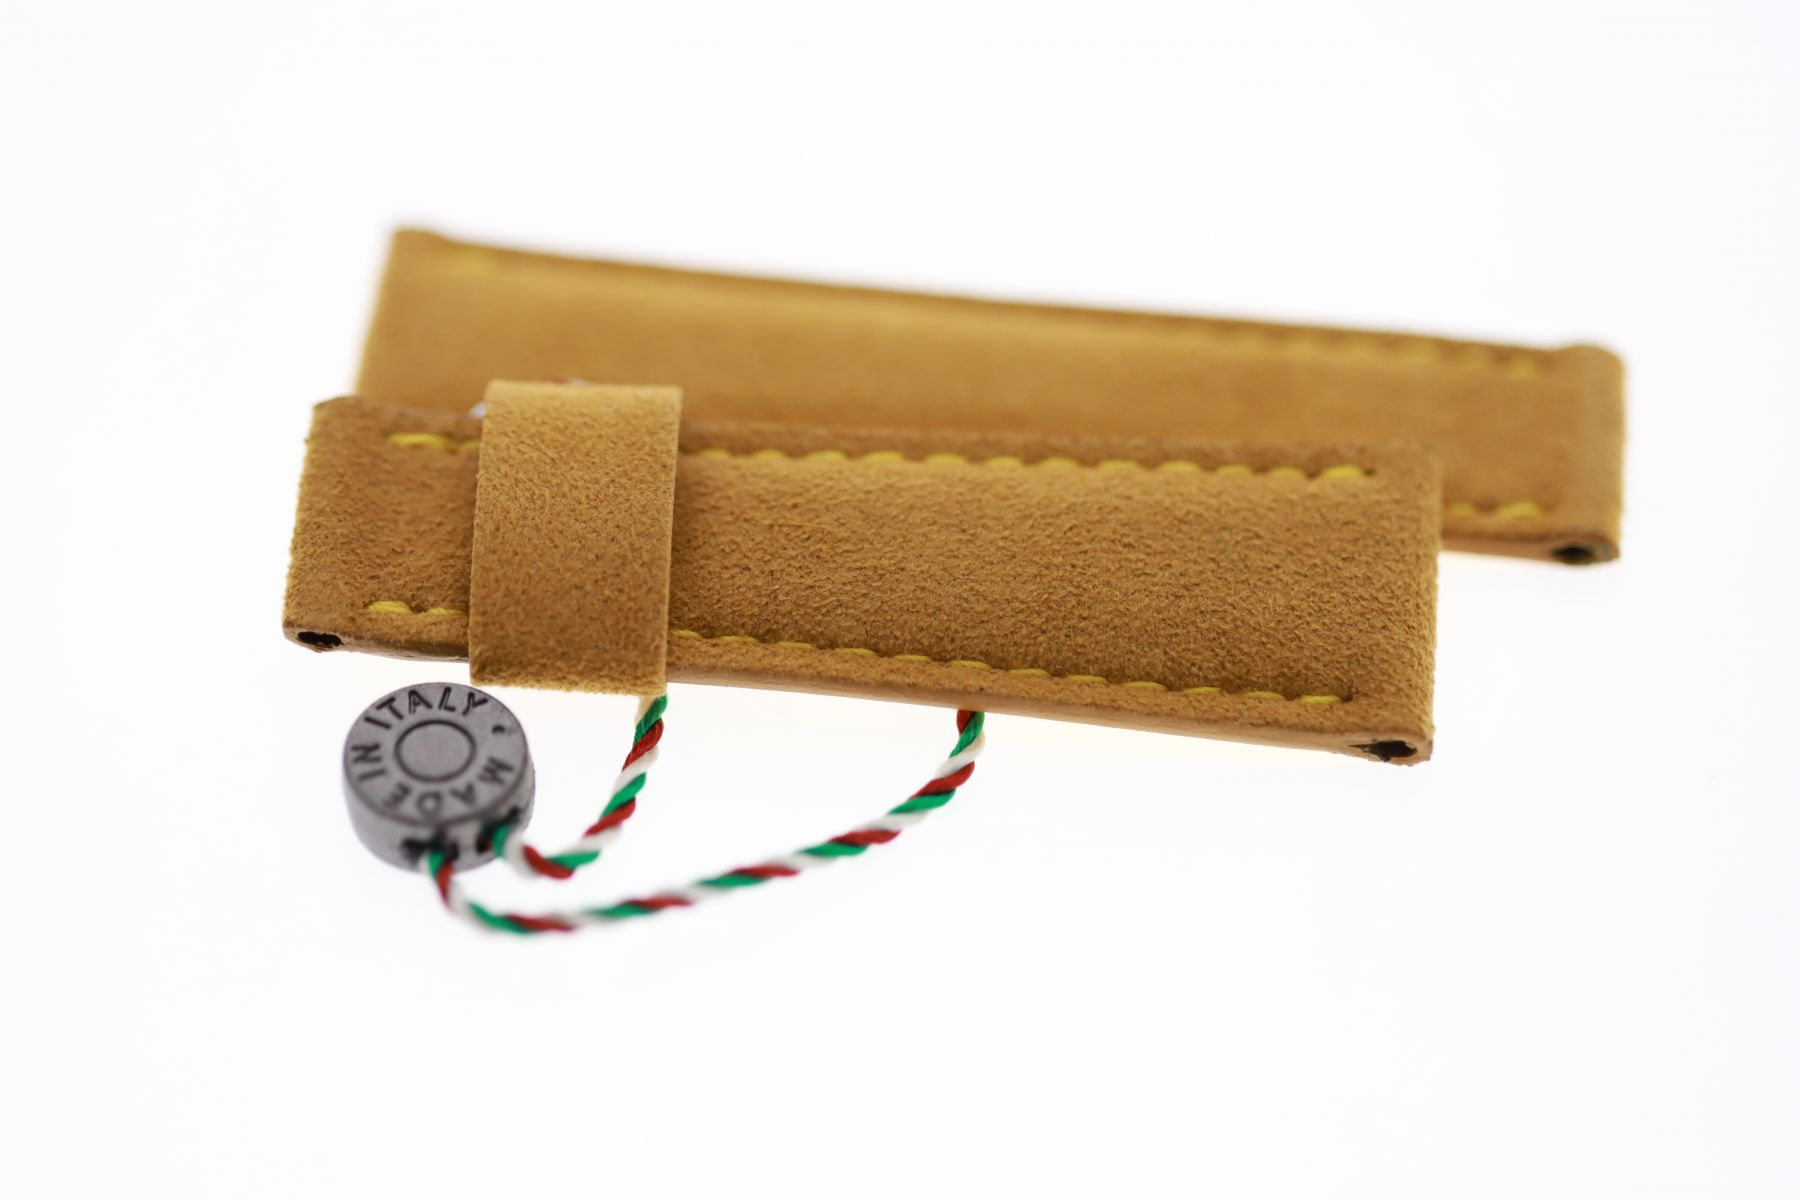 N2 Yellow Gold Alcantara® strap 20mm Rolex Daytona style